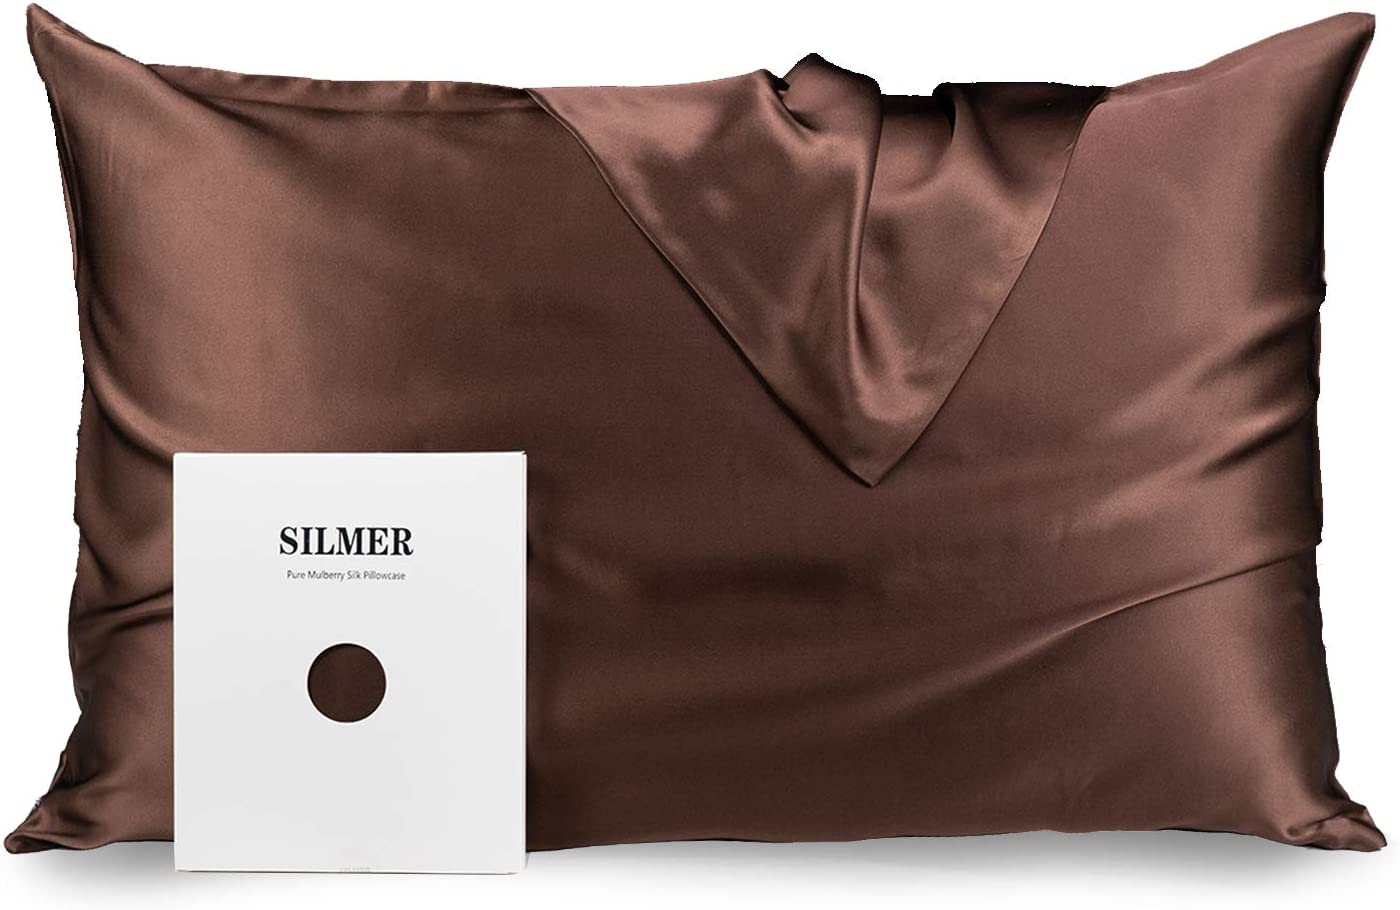 SILMER Silk Pillowcase Natural Mulberry Momme Thr 600 Super sale Limited Special Price 22